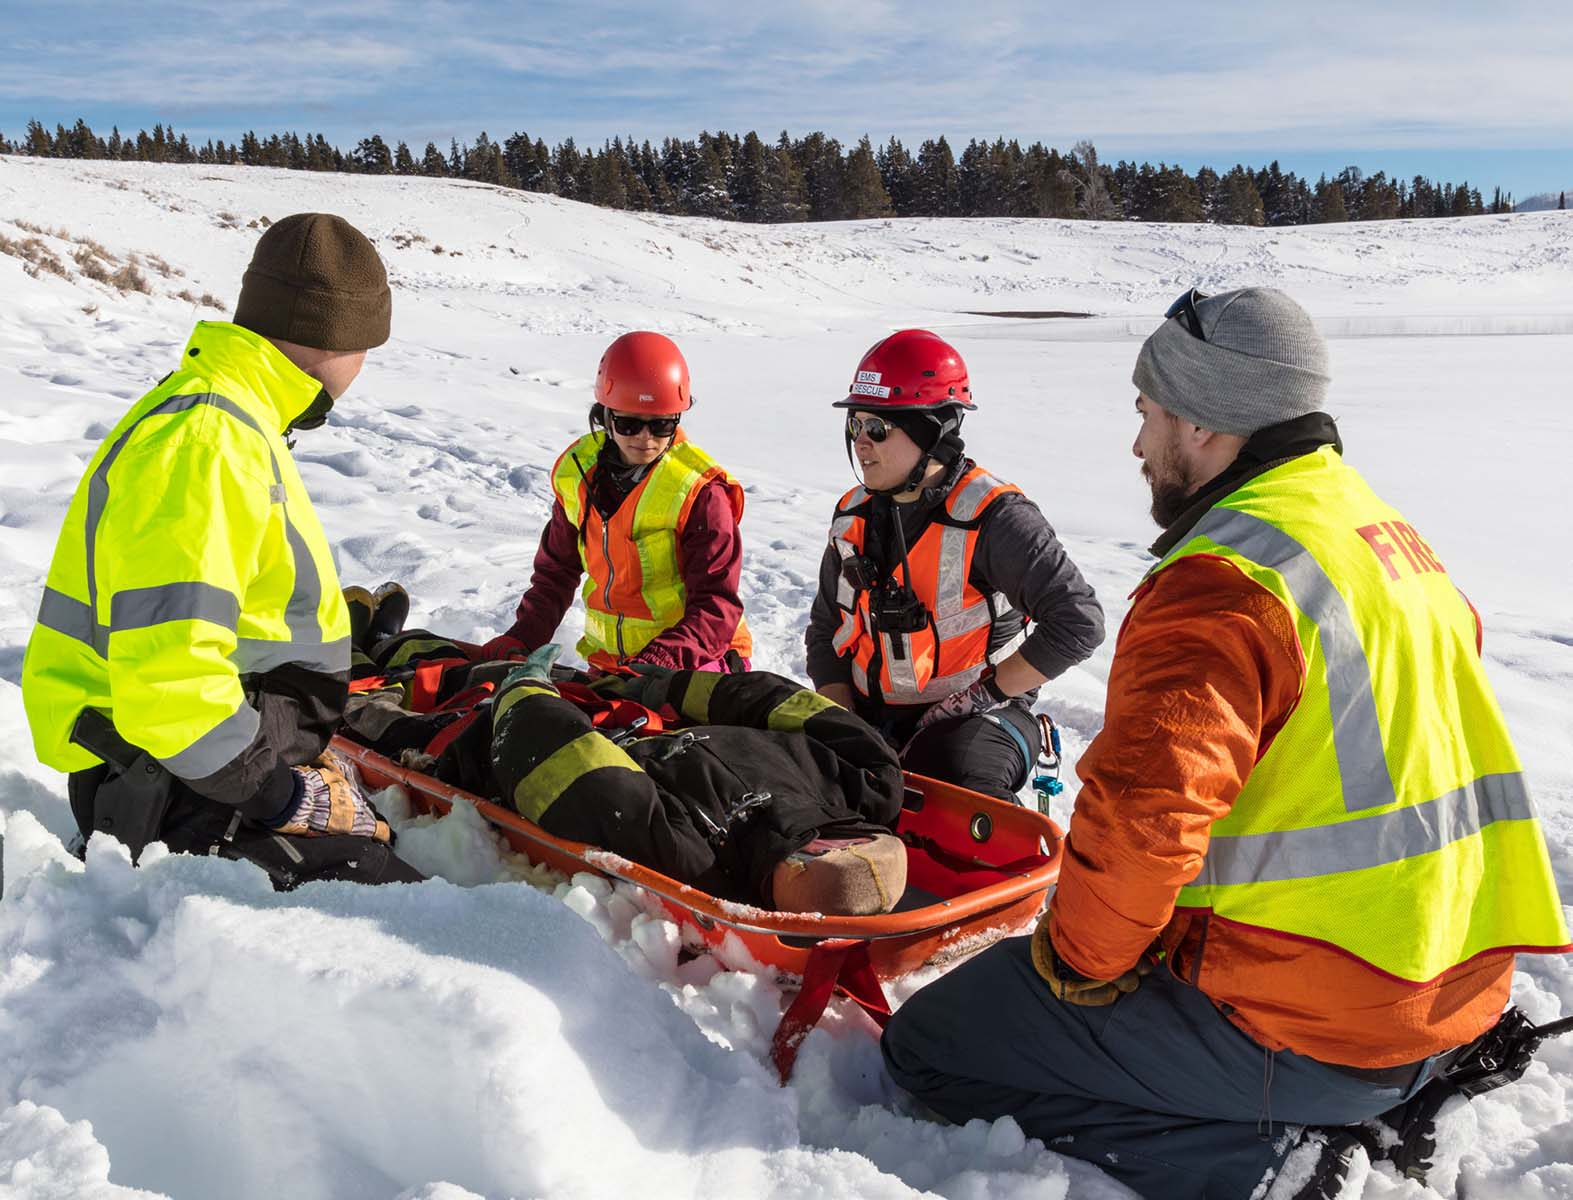 Search and Rescue volunteers in Yellowstone National Park train for a winter rescue operation. NPS photo/Jacob W. Frank.